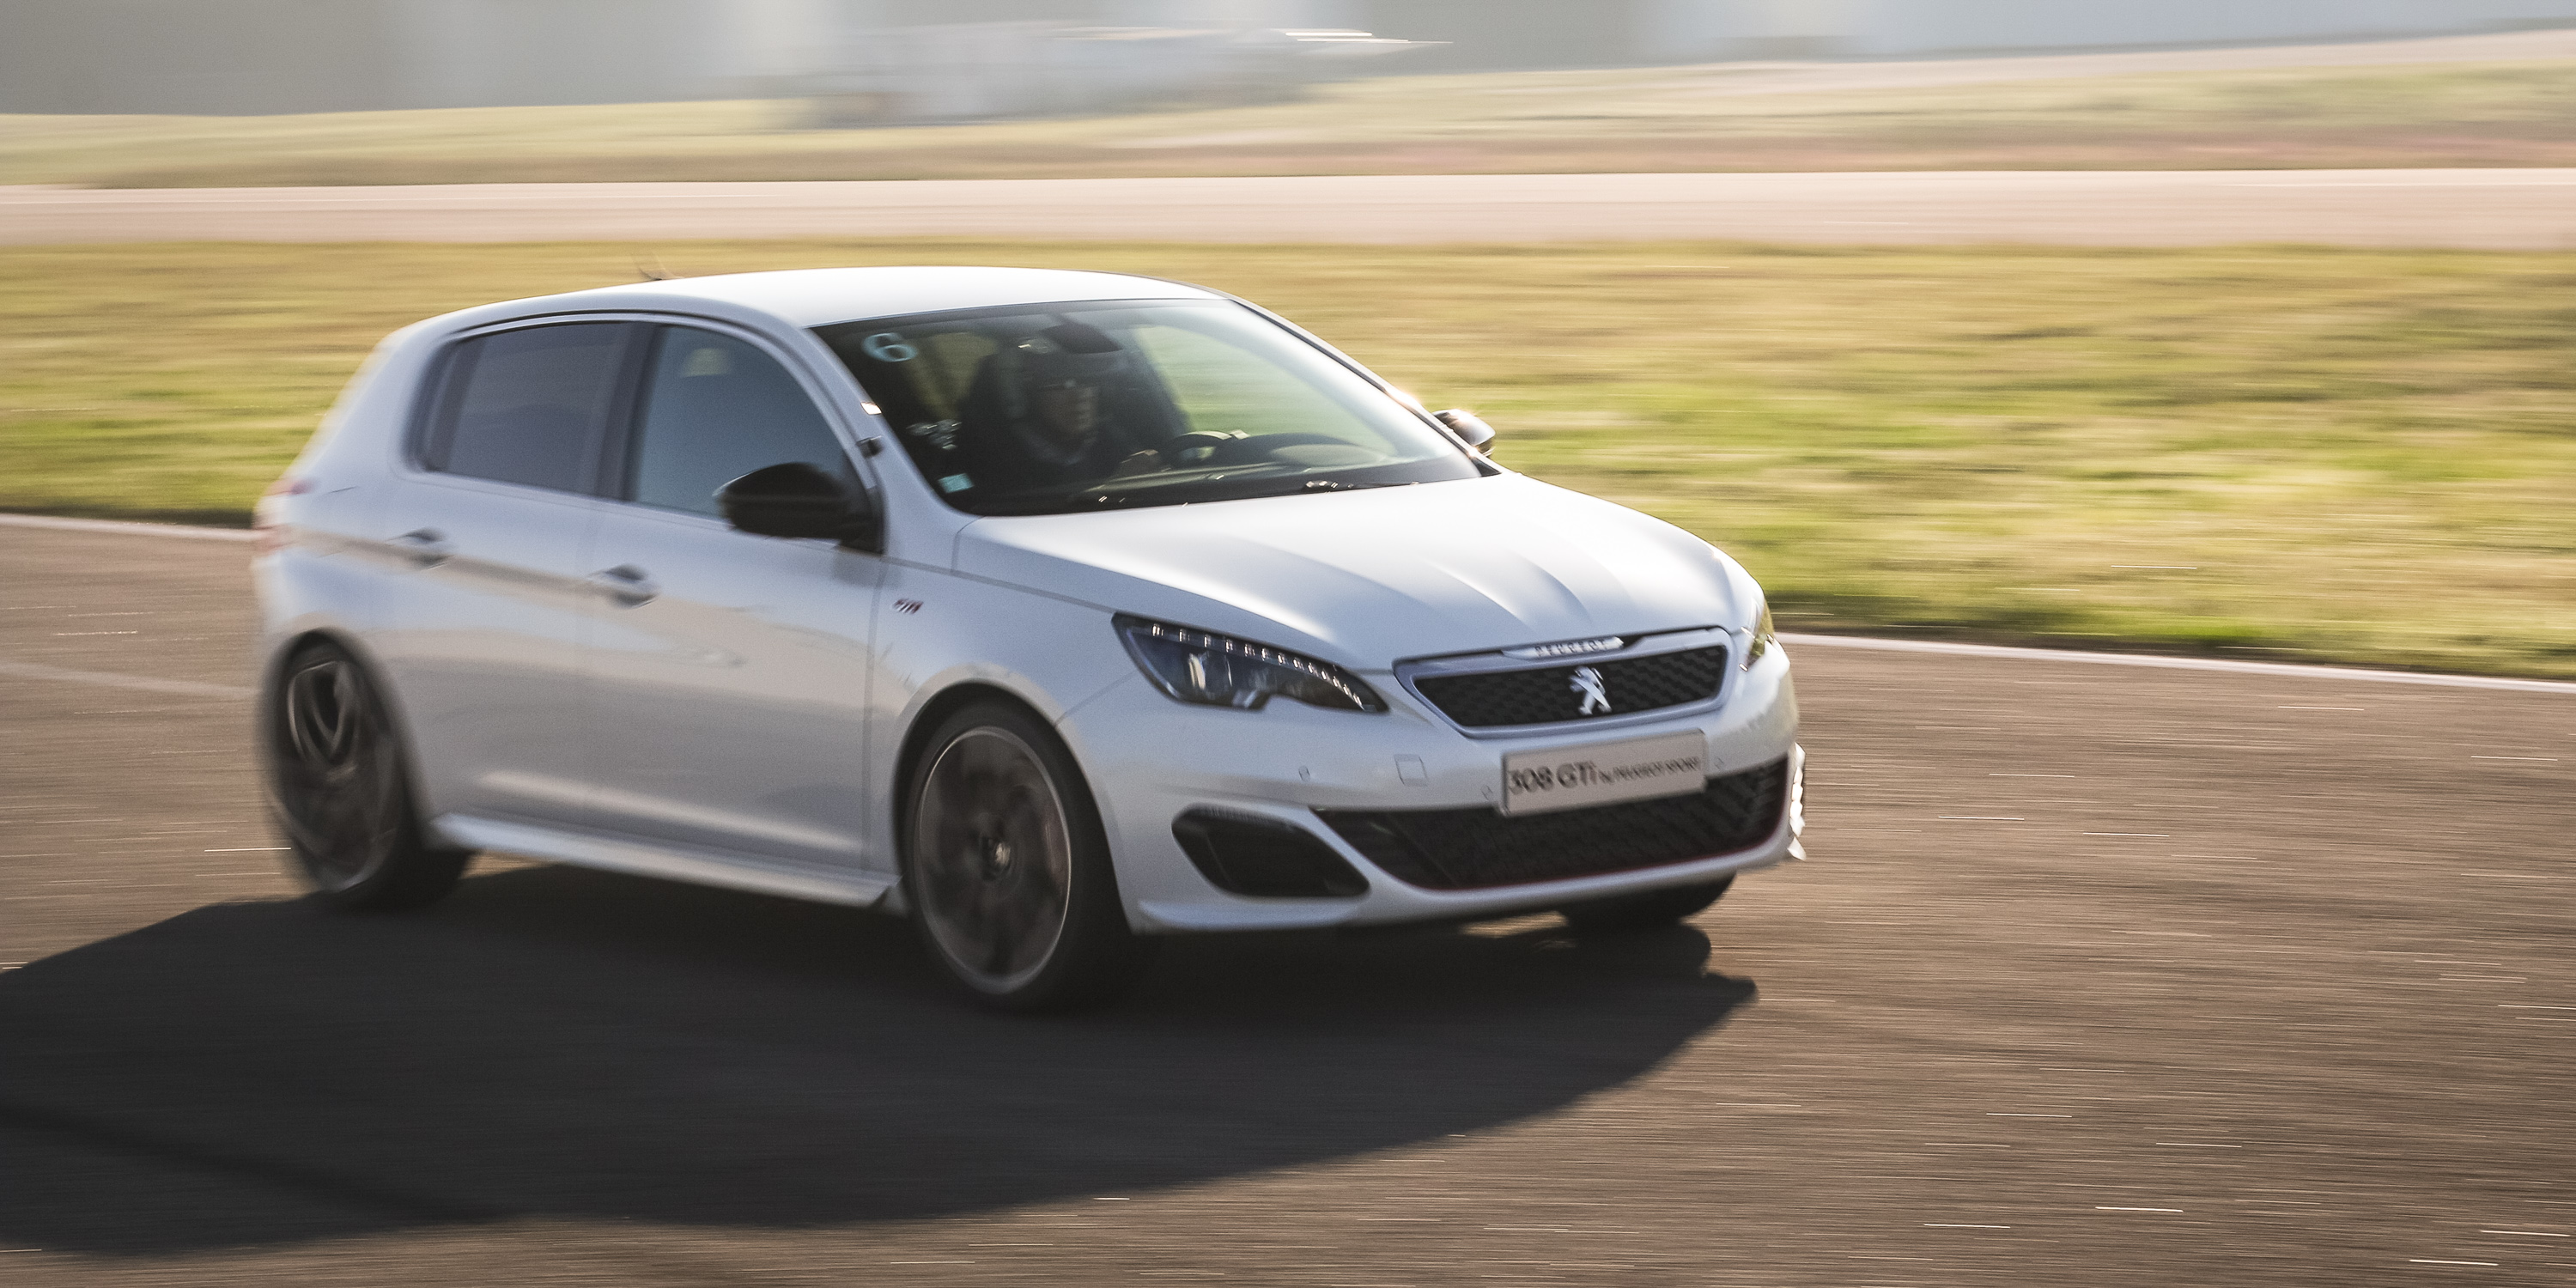 2016 Peugeot 308 Gti White (Photo 15 of 15)